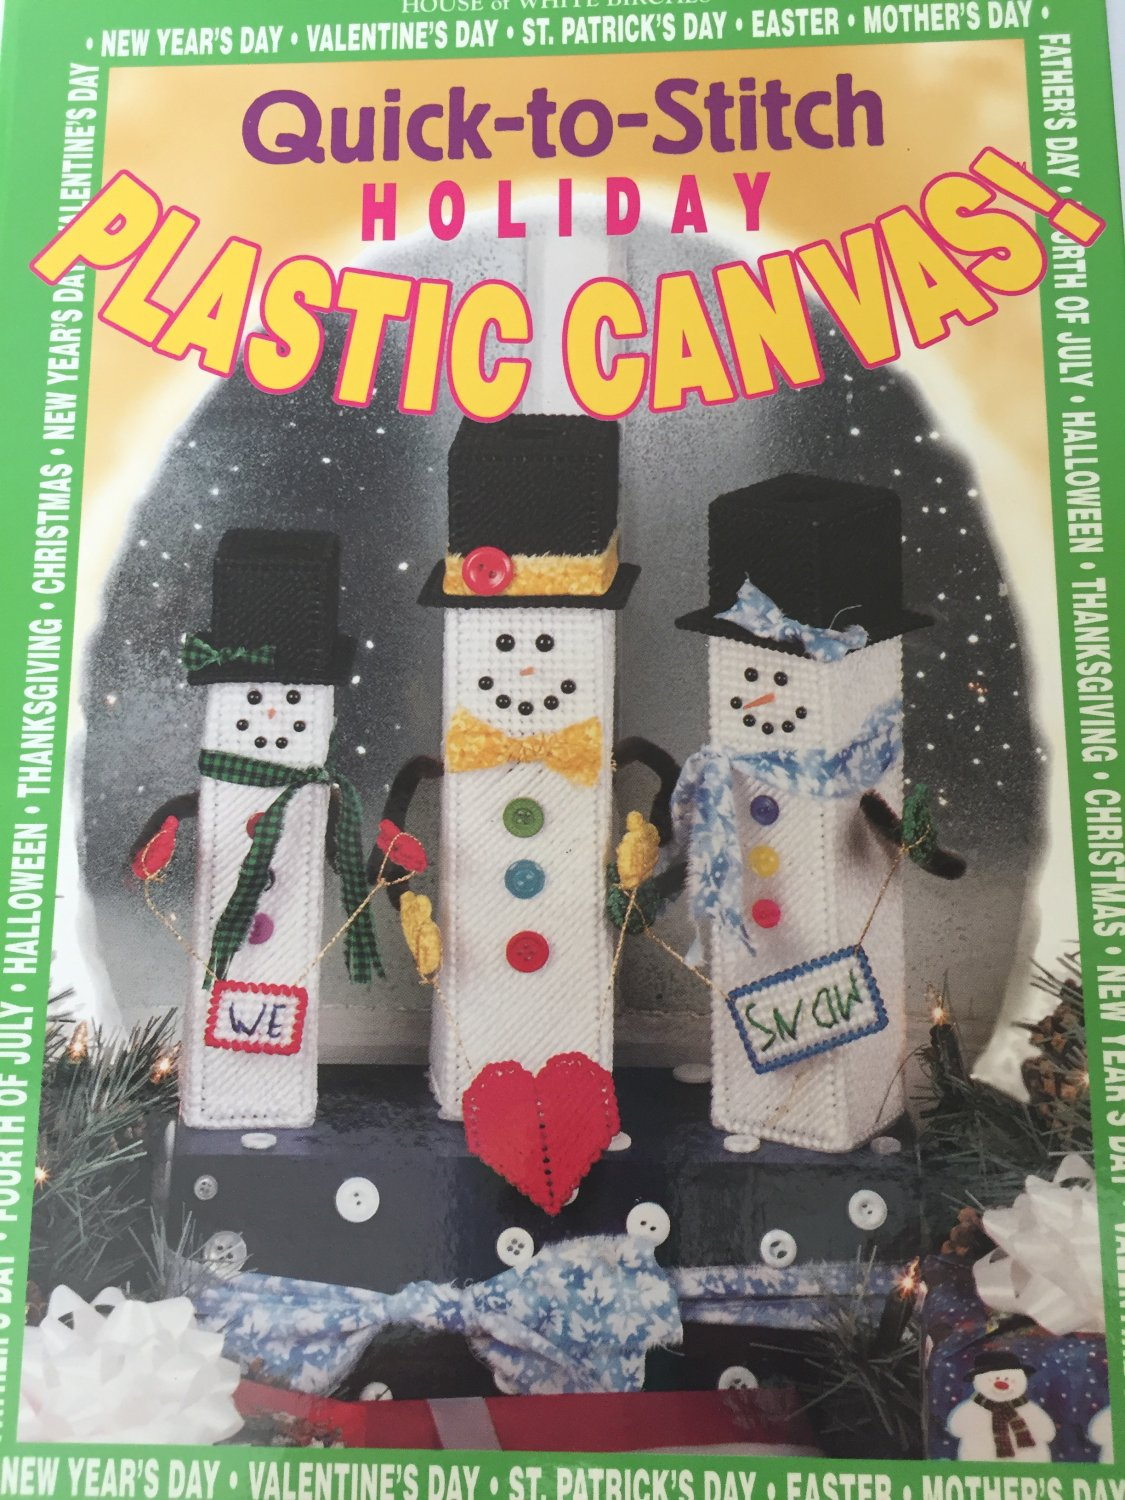 Quick-To-Stitch Holiday Plastic Canvas Laura Scott House of White Birches